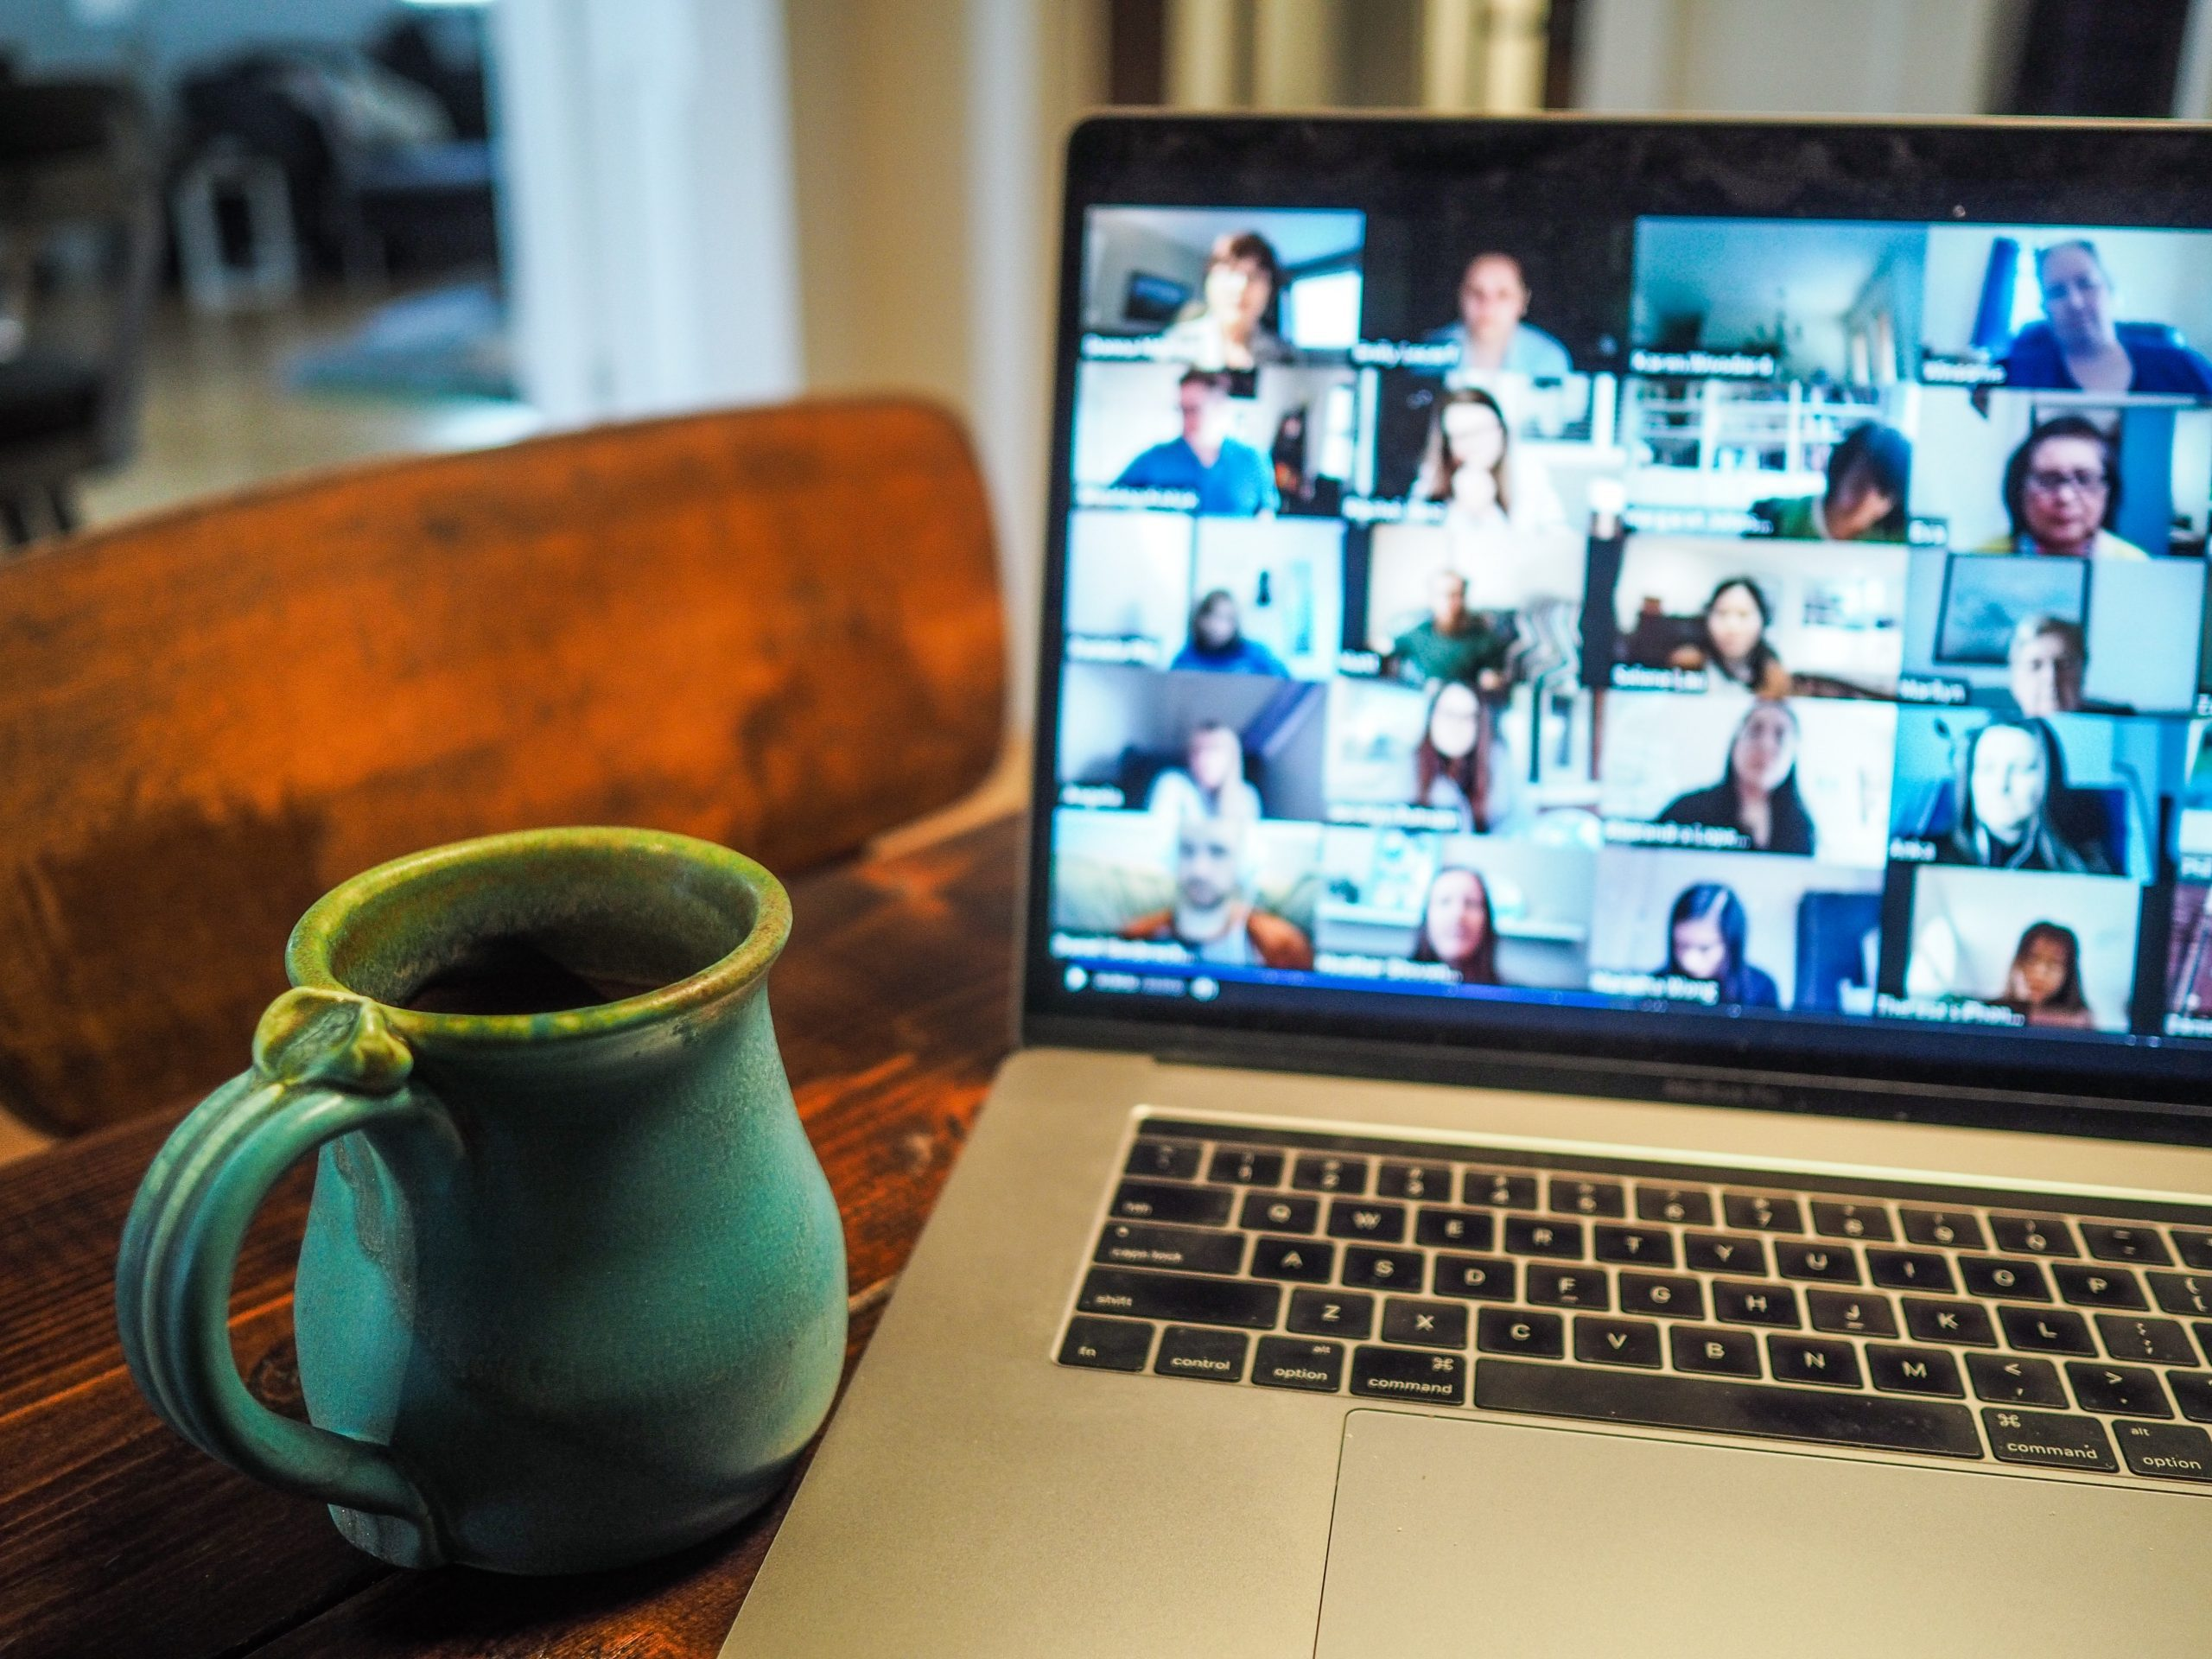 laptop with a zoom call next to a teal coffee mug on a wooden table